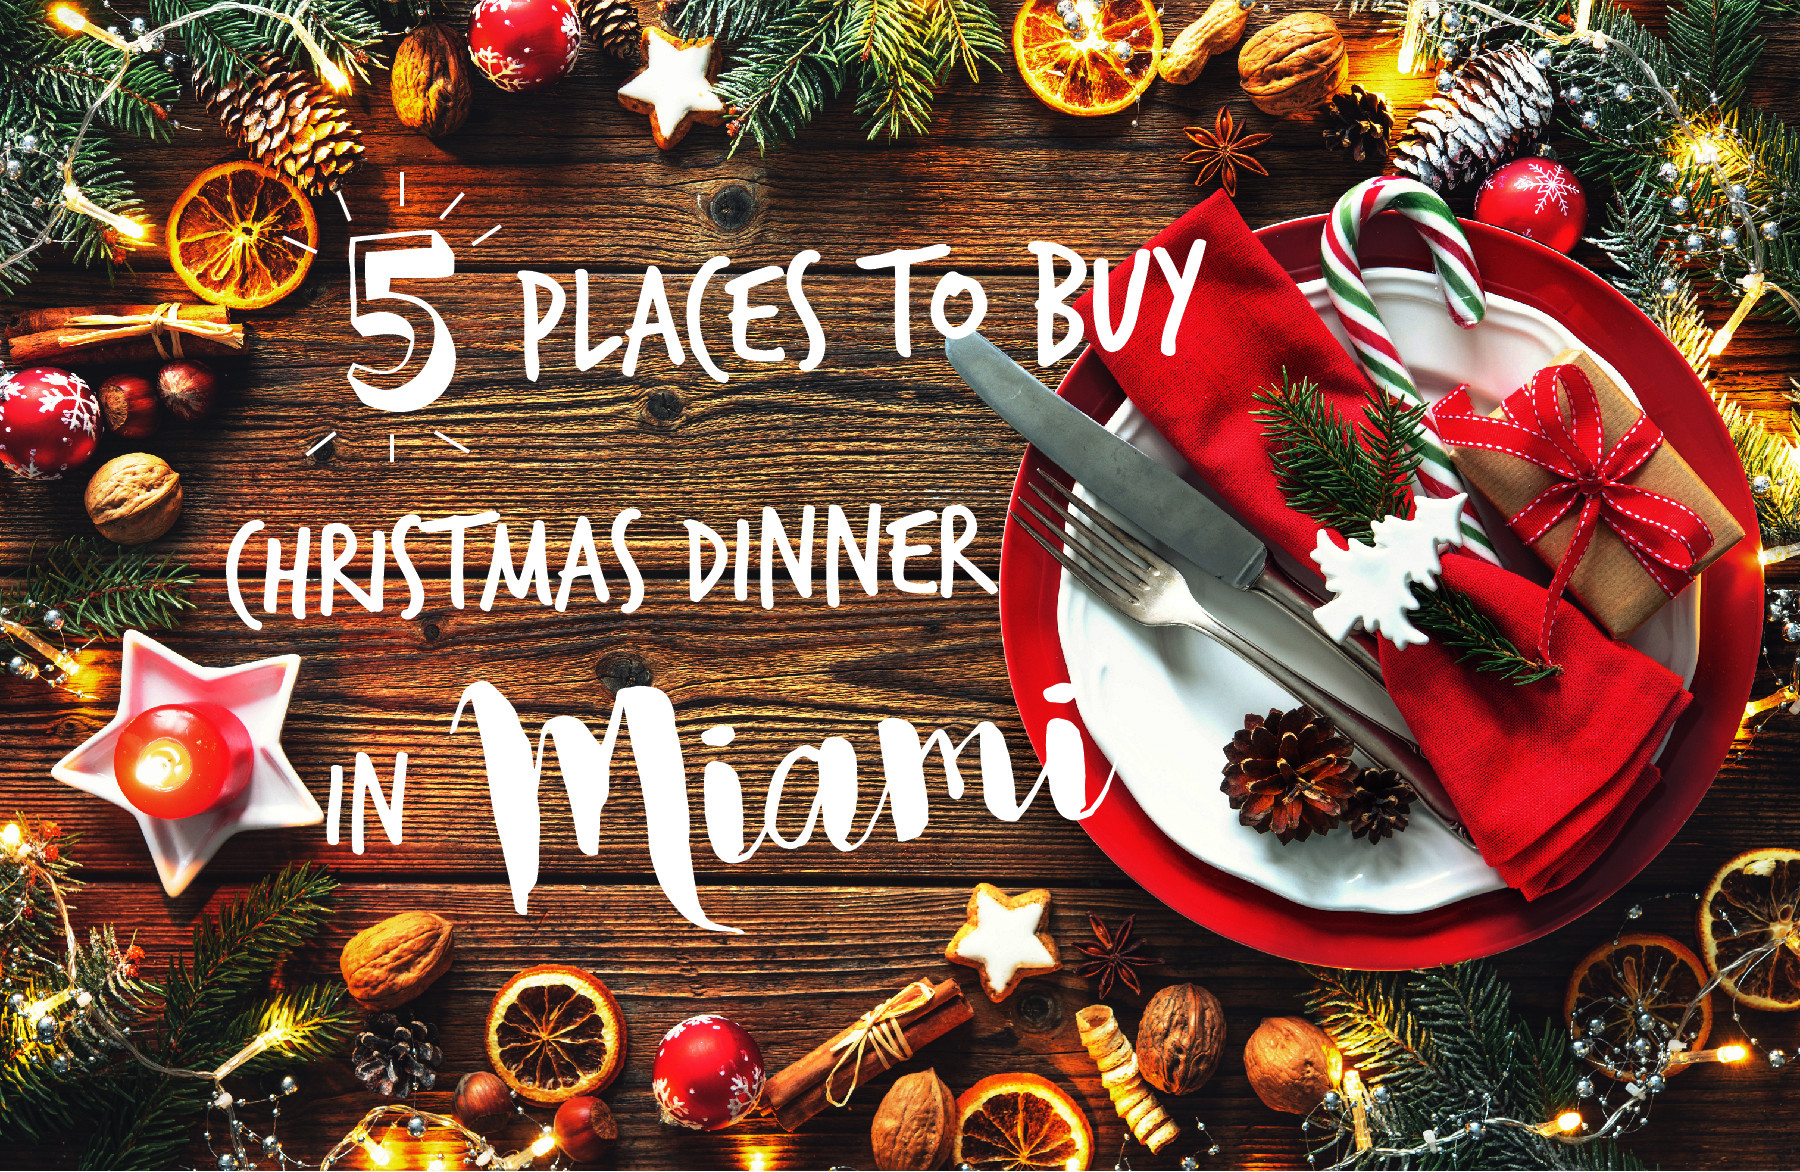 Order Christmas Dinner  5 Places to your Christmas Dinner in Miami Wehpah APP